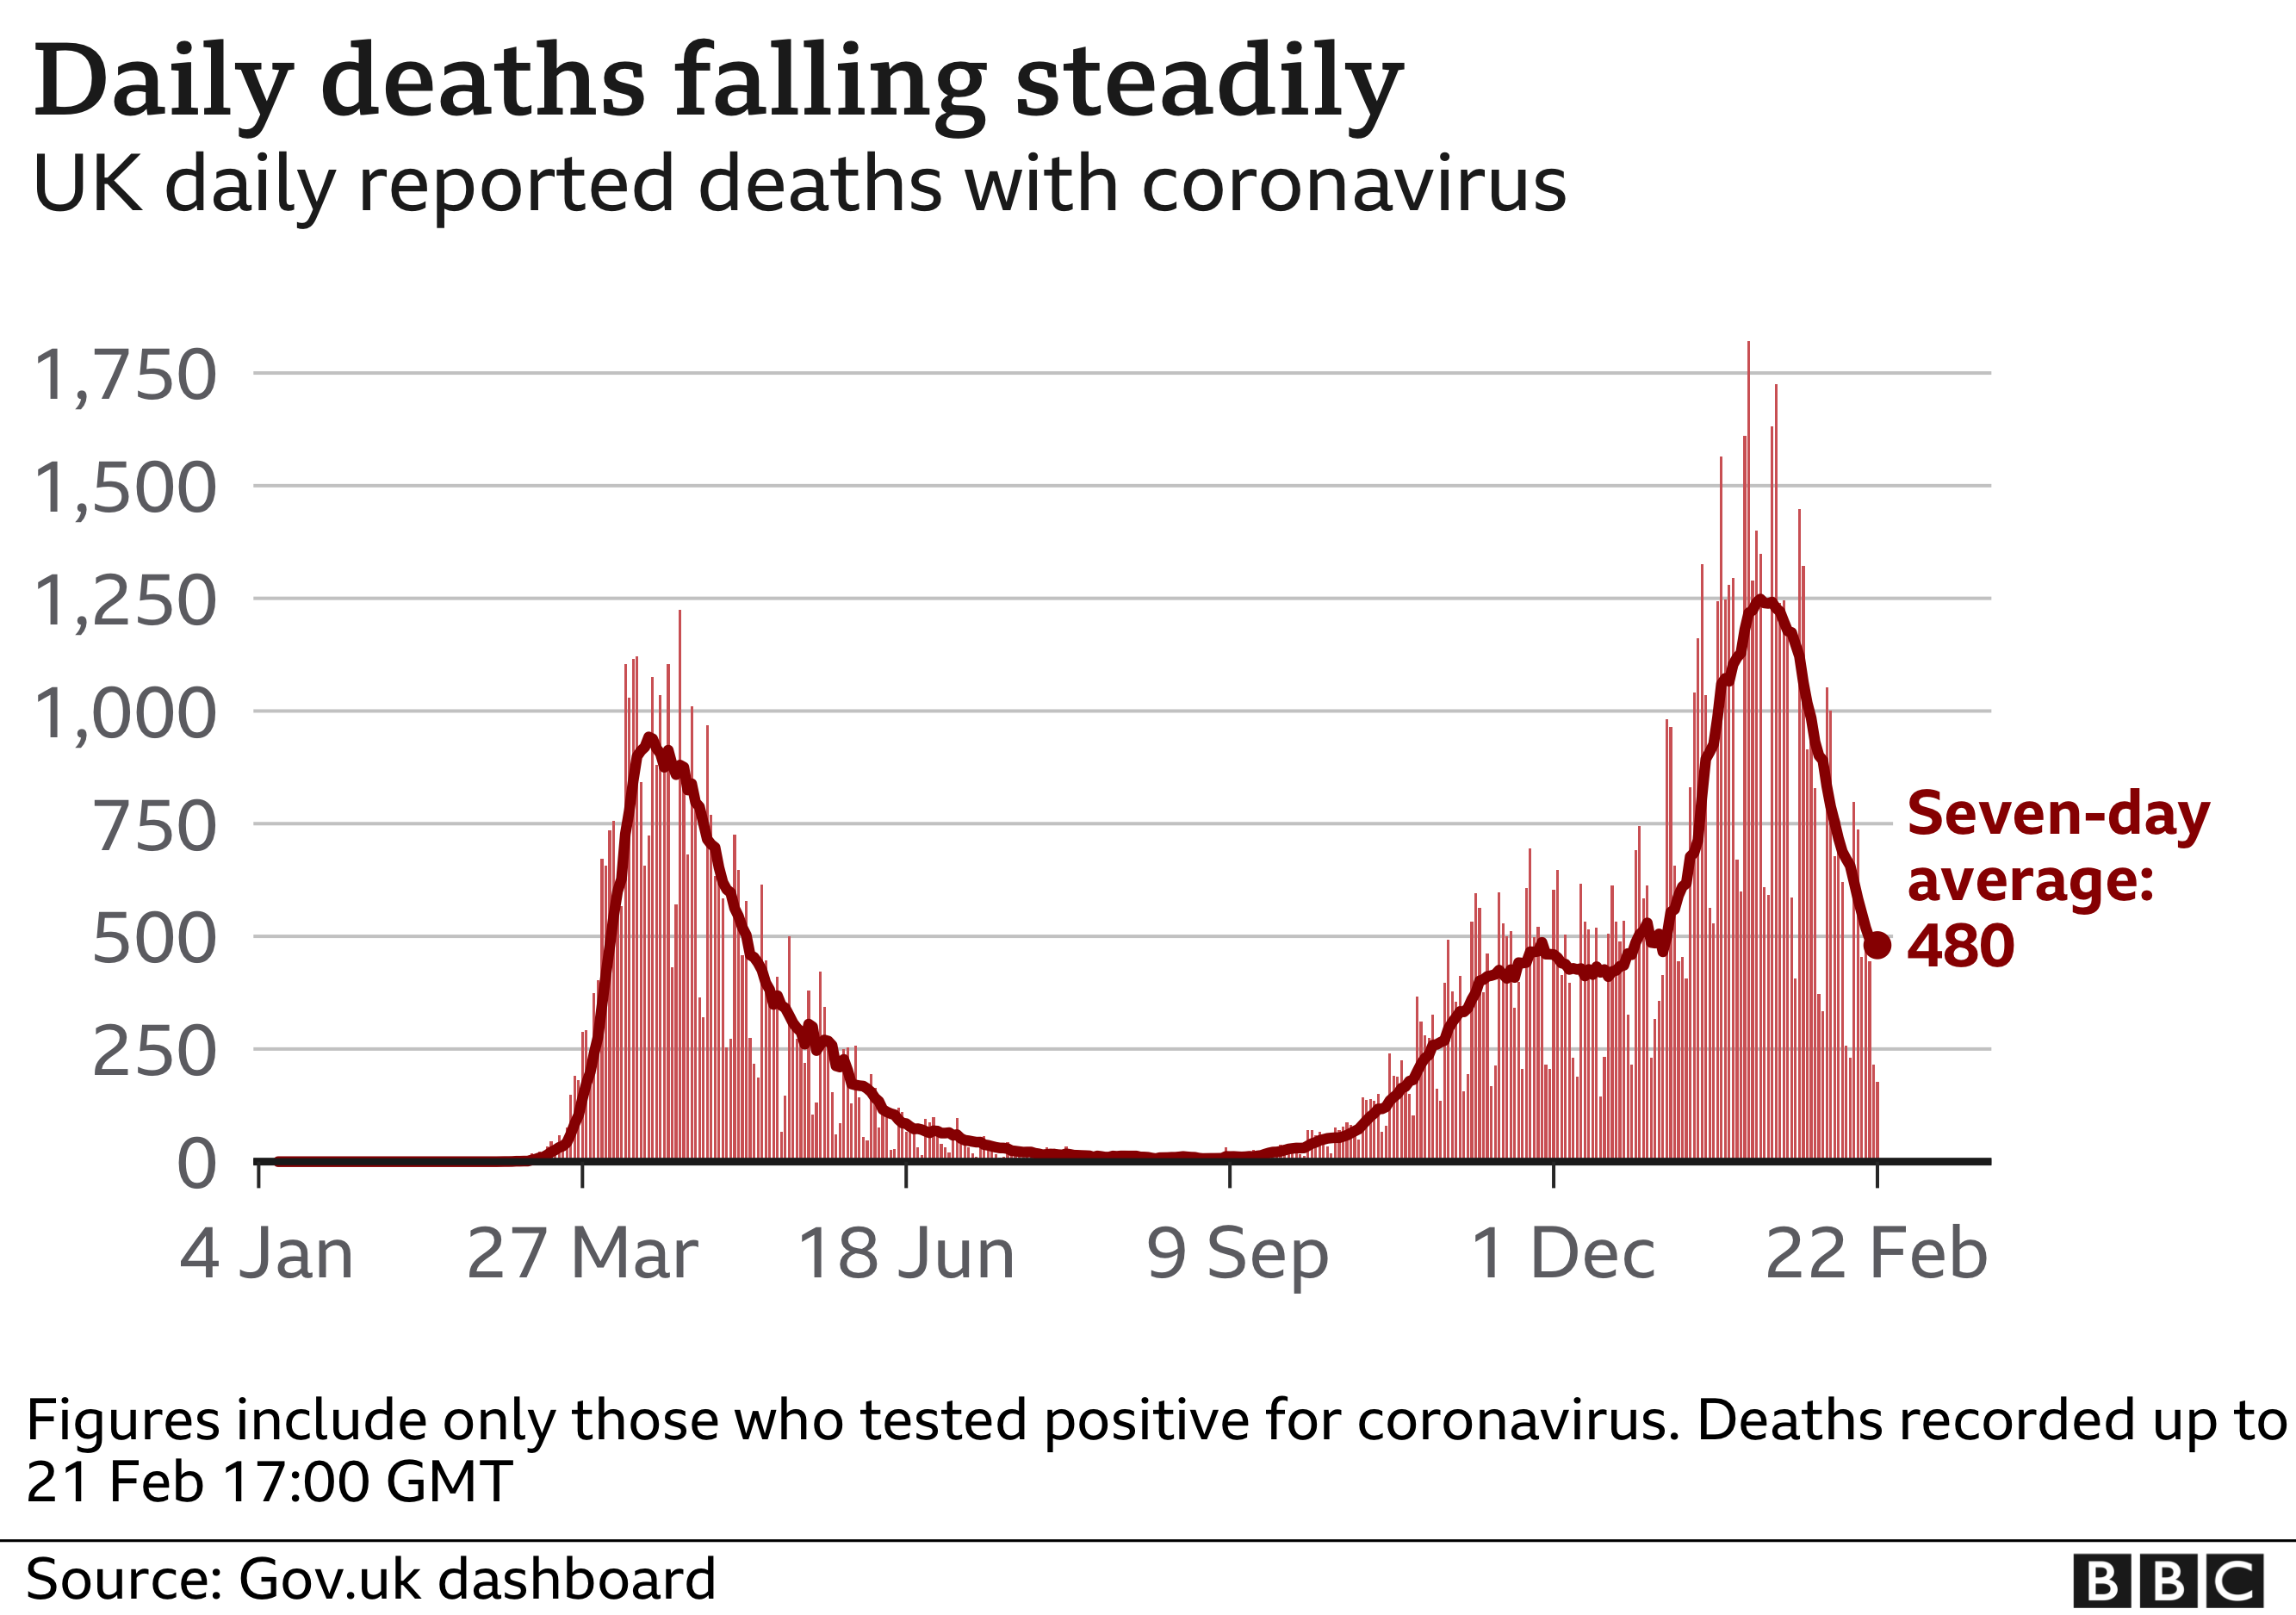 Chart shows daily deaths are falling steadily. Updated 22 Feb.